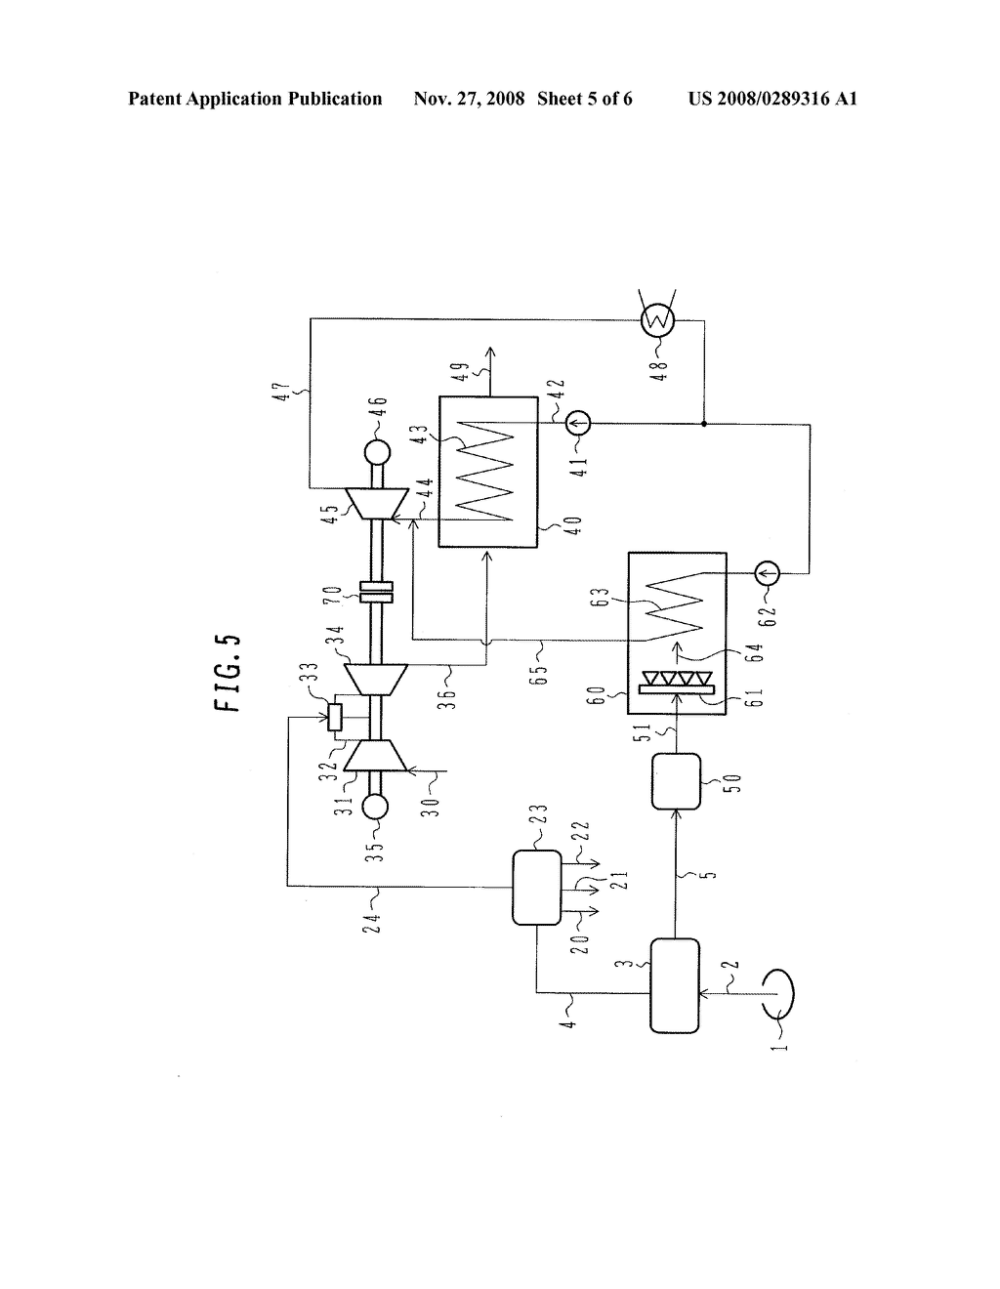 medium resolution of combined cycle power plant and steam thermal power plant diagram schematic and image 06